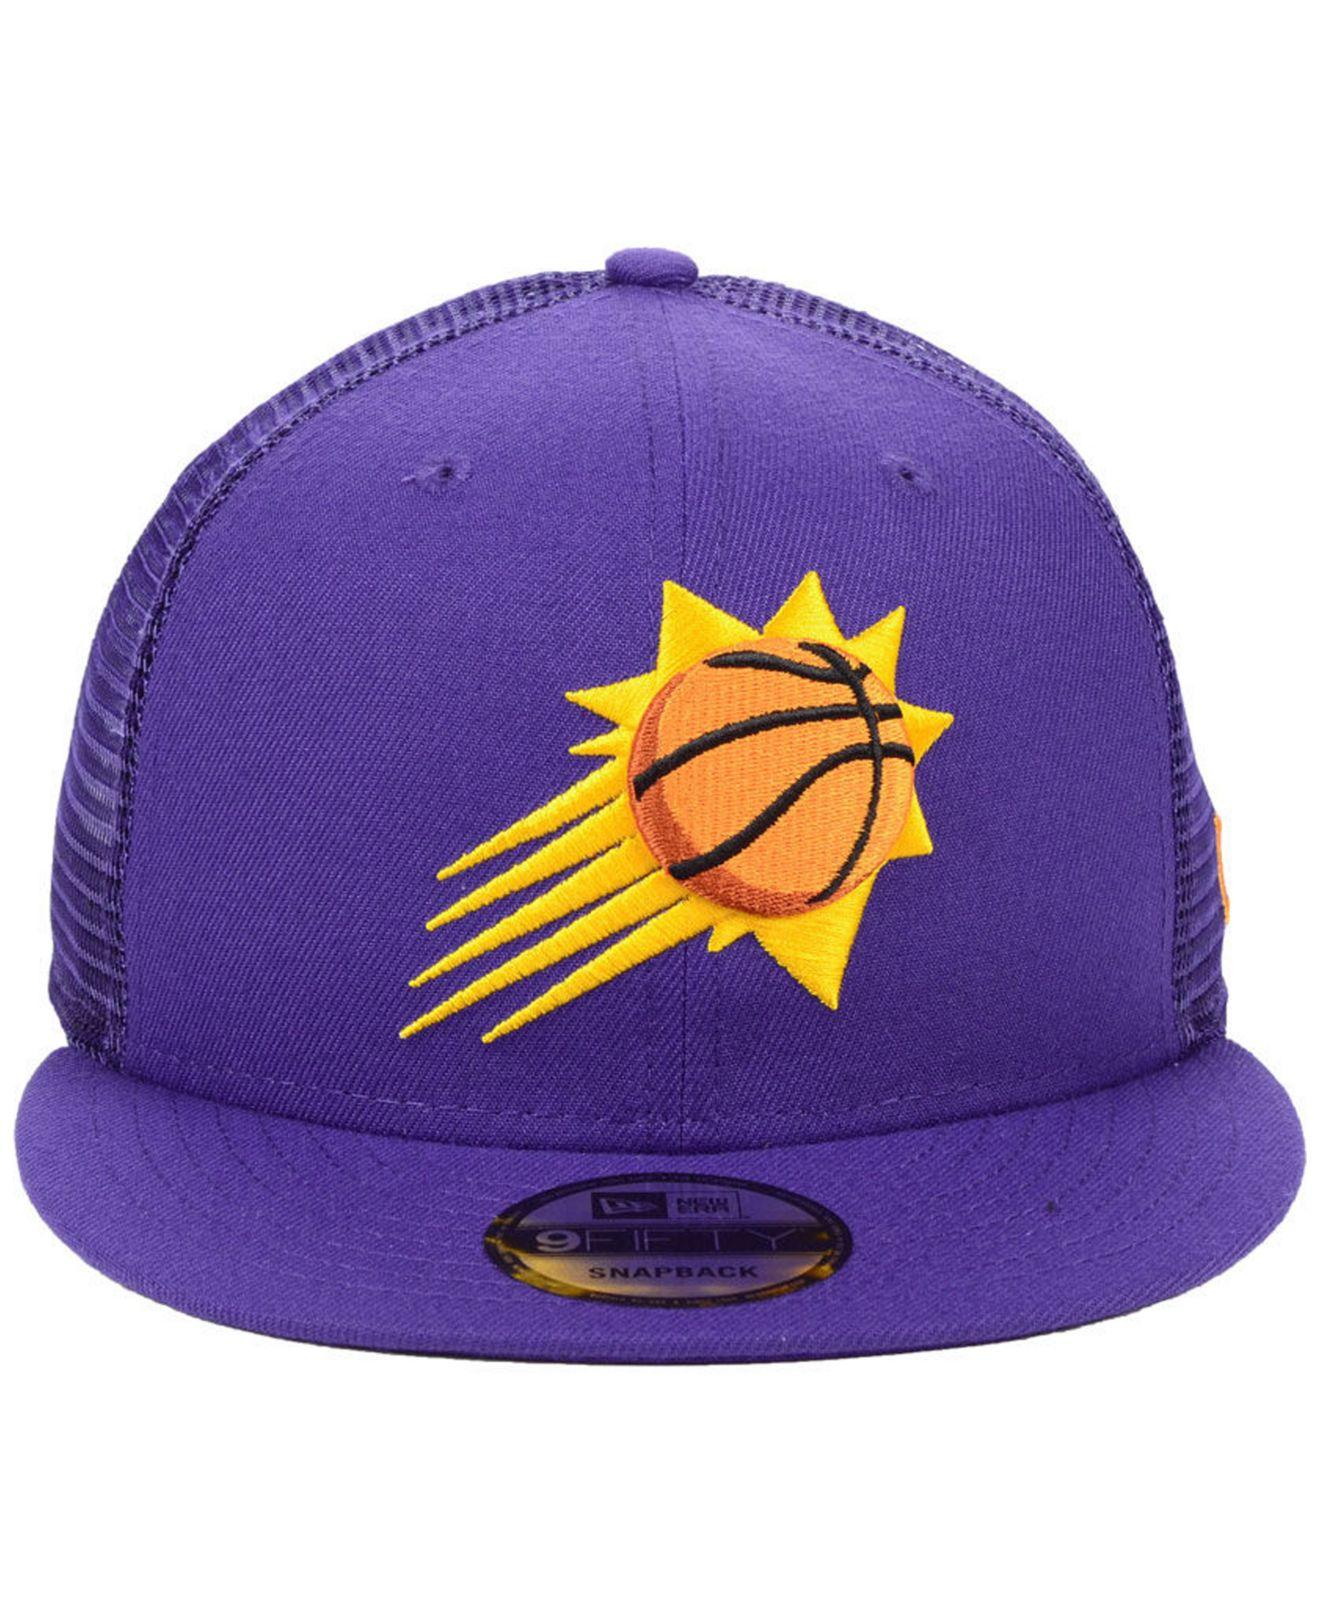 new arrival 0b2b2 88c43 Lyst - KTZ Phoenix Suns Nothing But Net 9fifty Snapback Cap in Purple for  Men - Save 14%